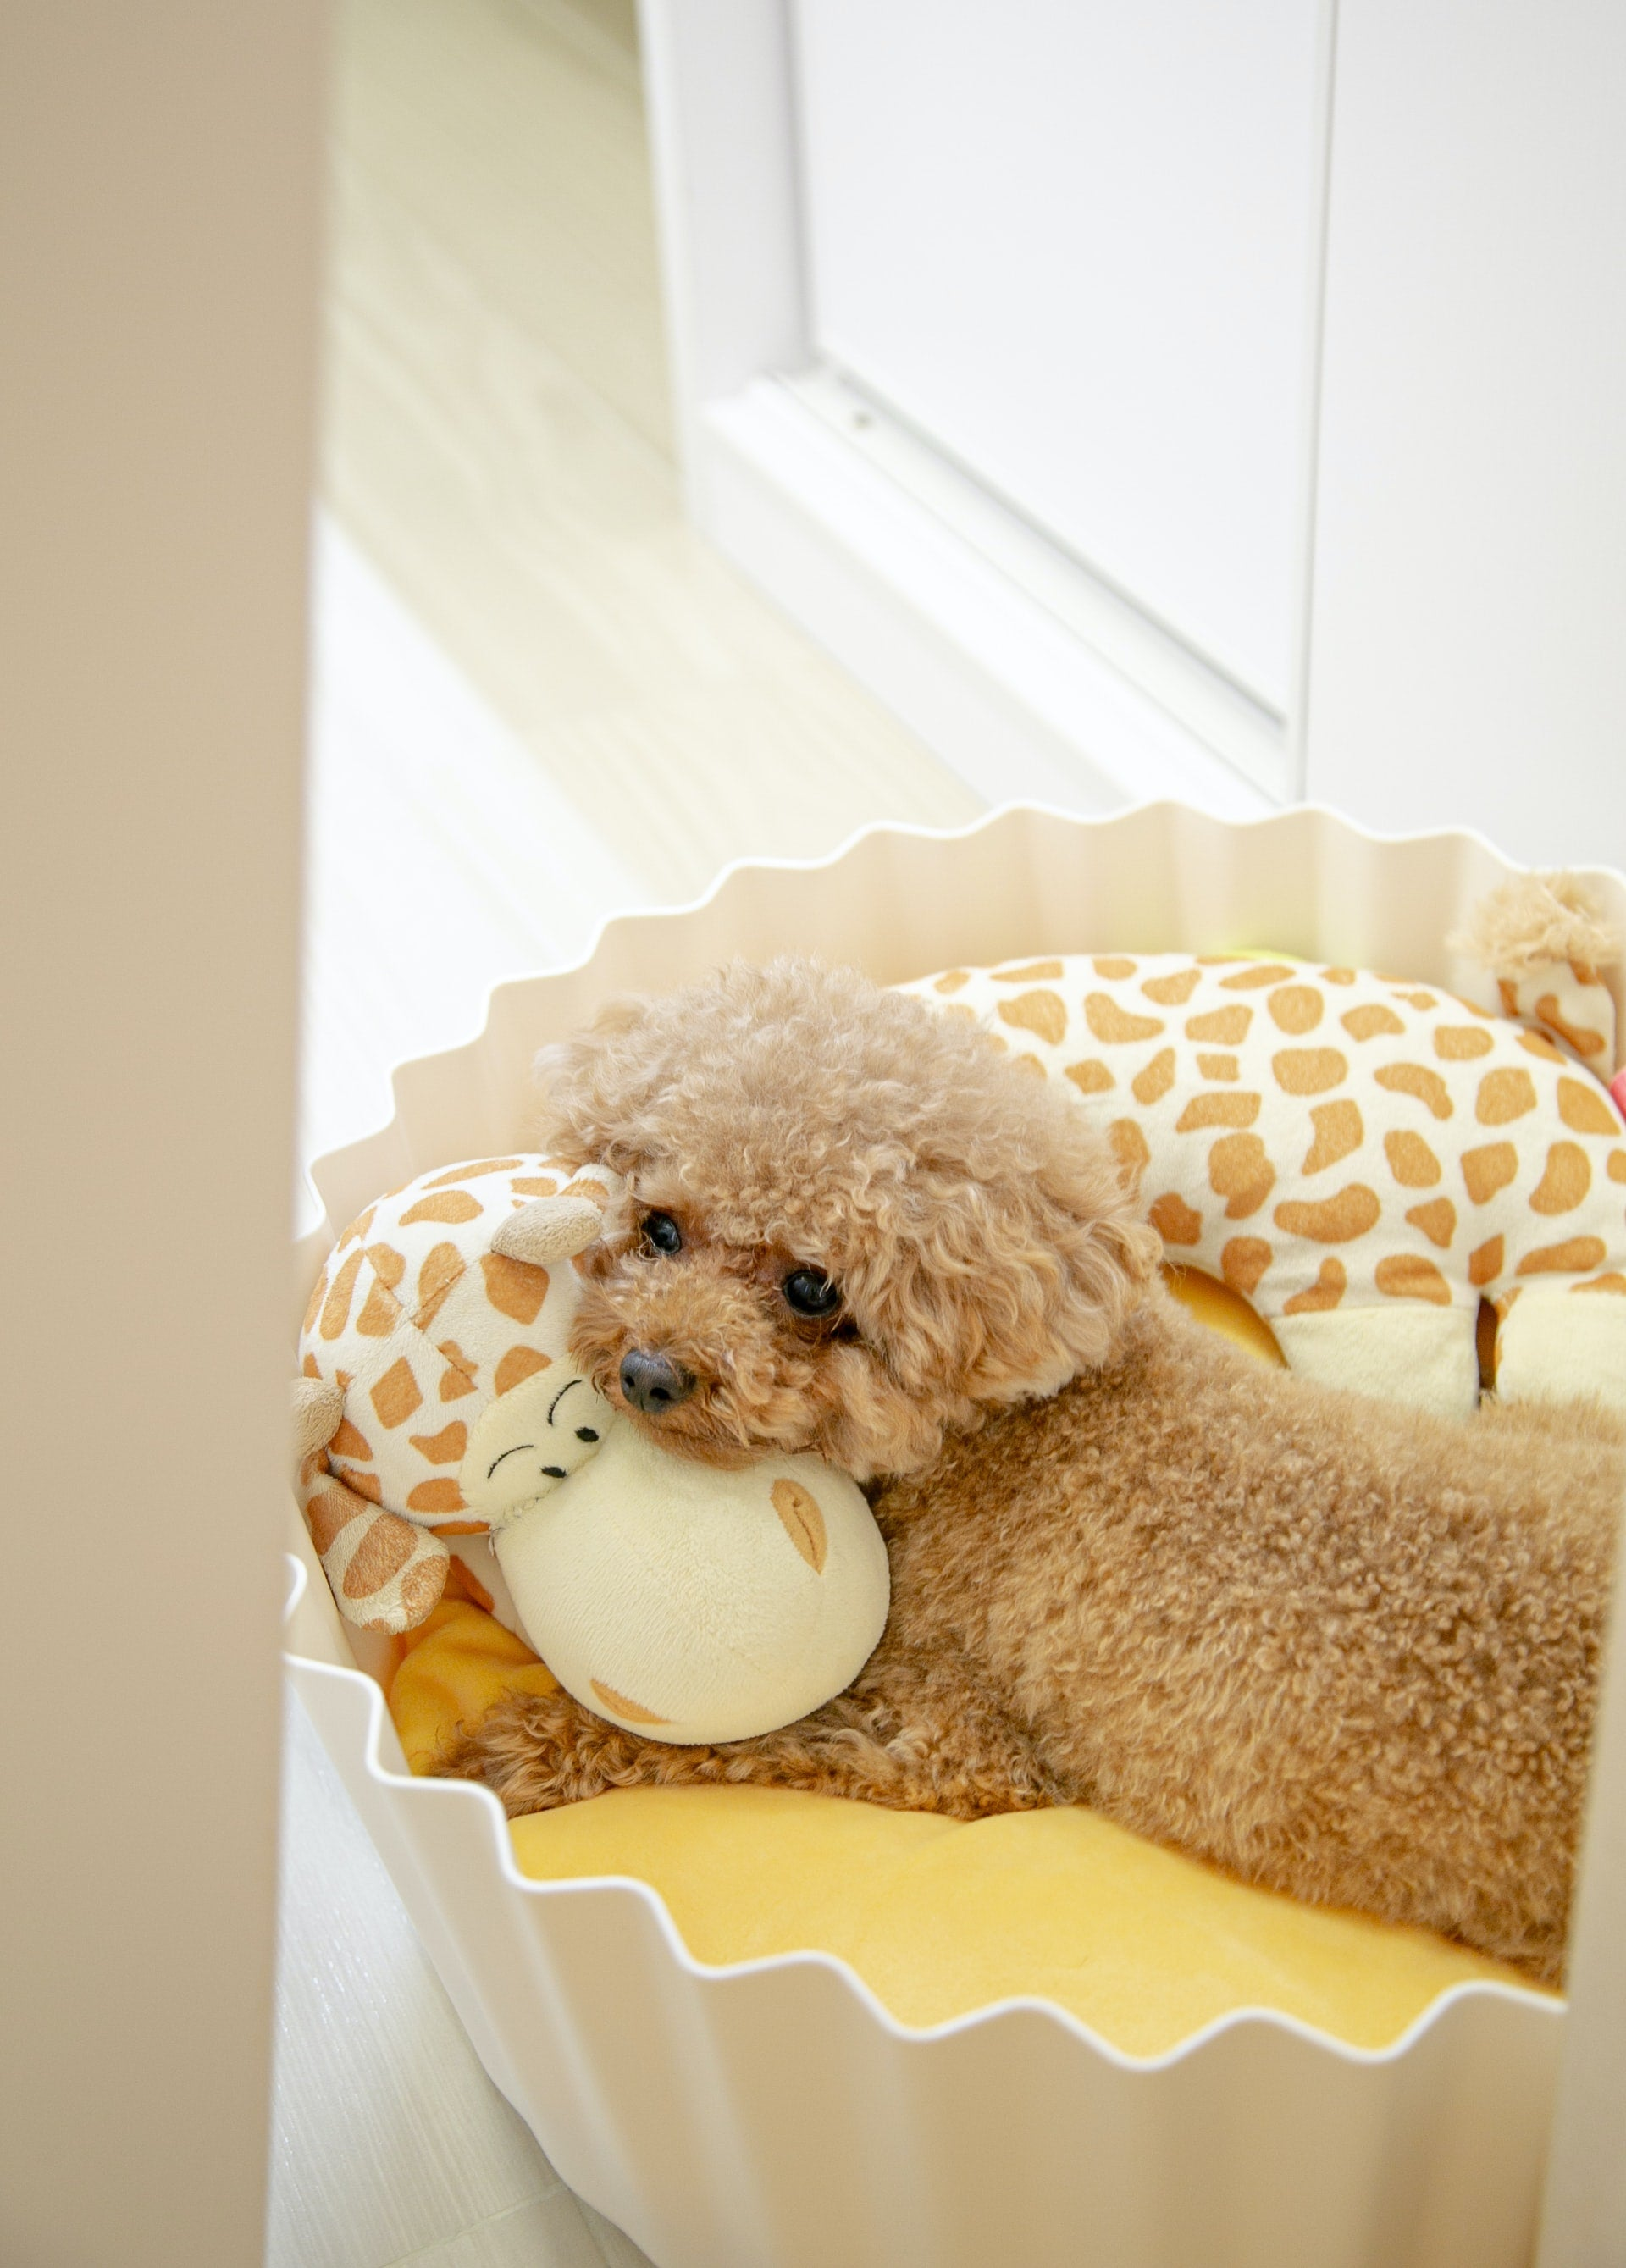 Golden Doodle laying in a round dog bed with her head resting on stuffed animals.  Photo by Alison Pang.